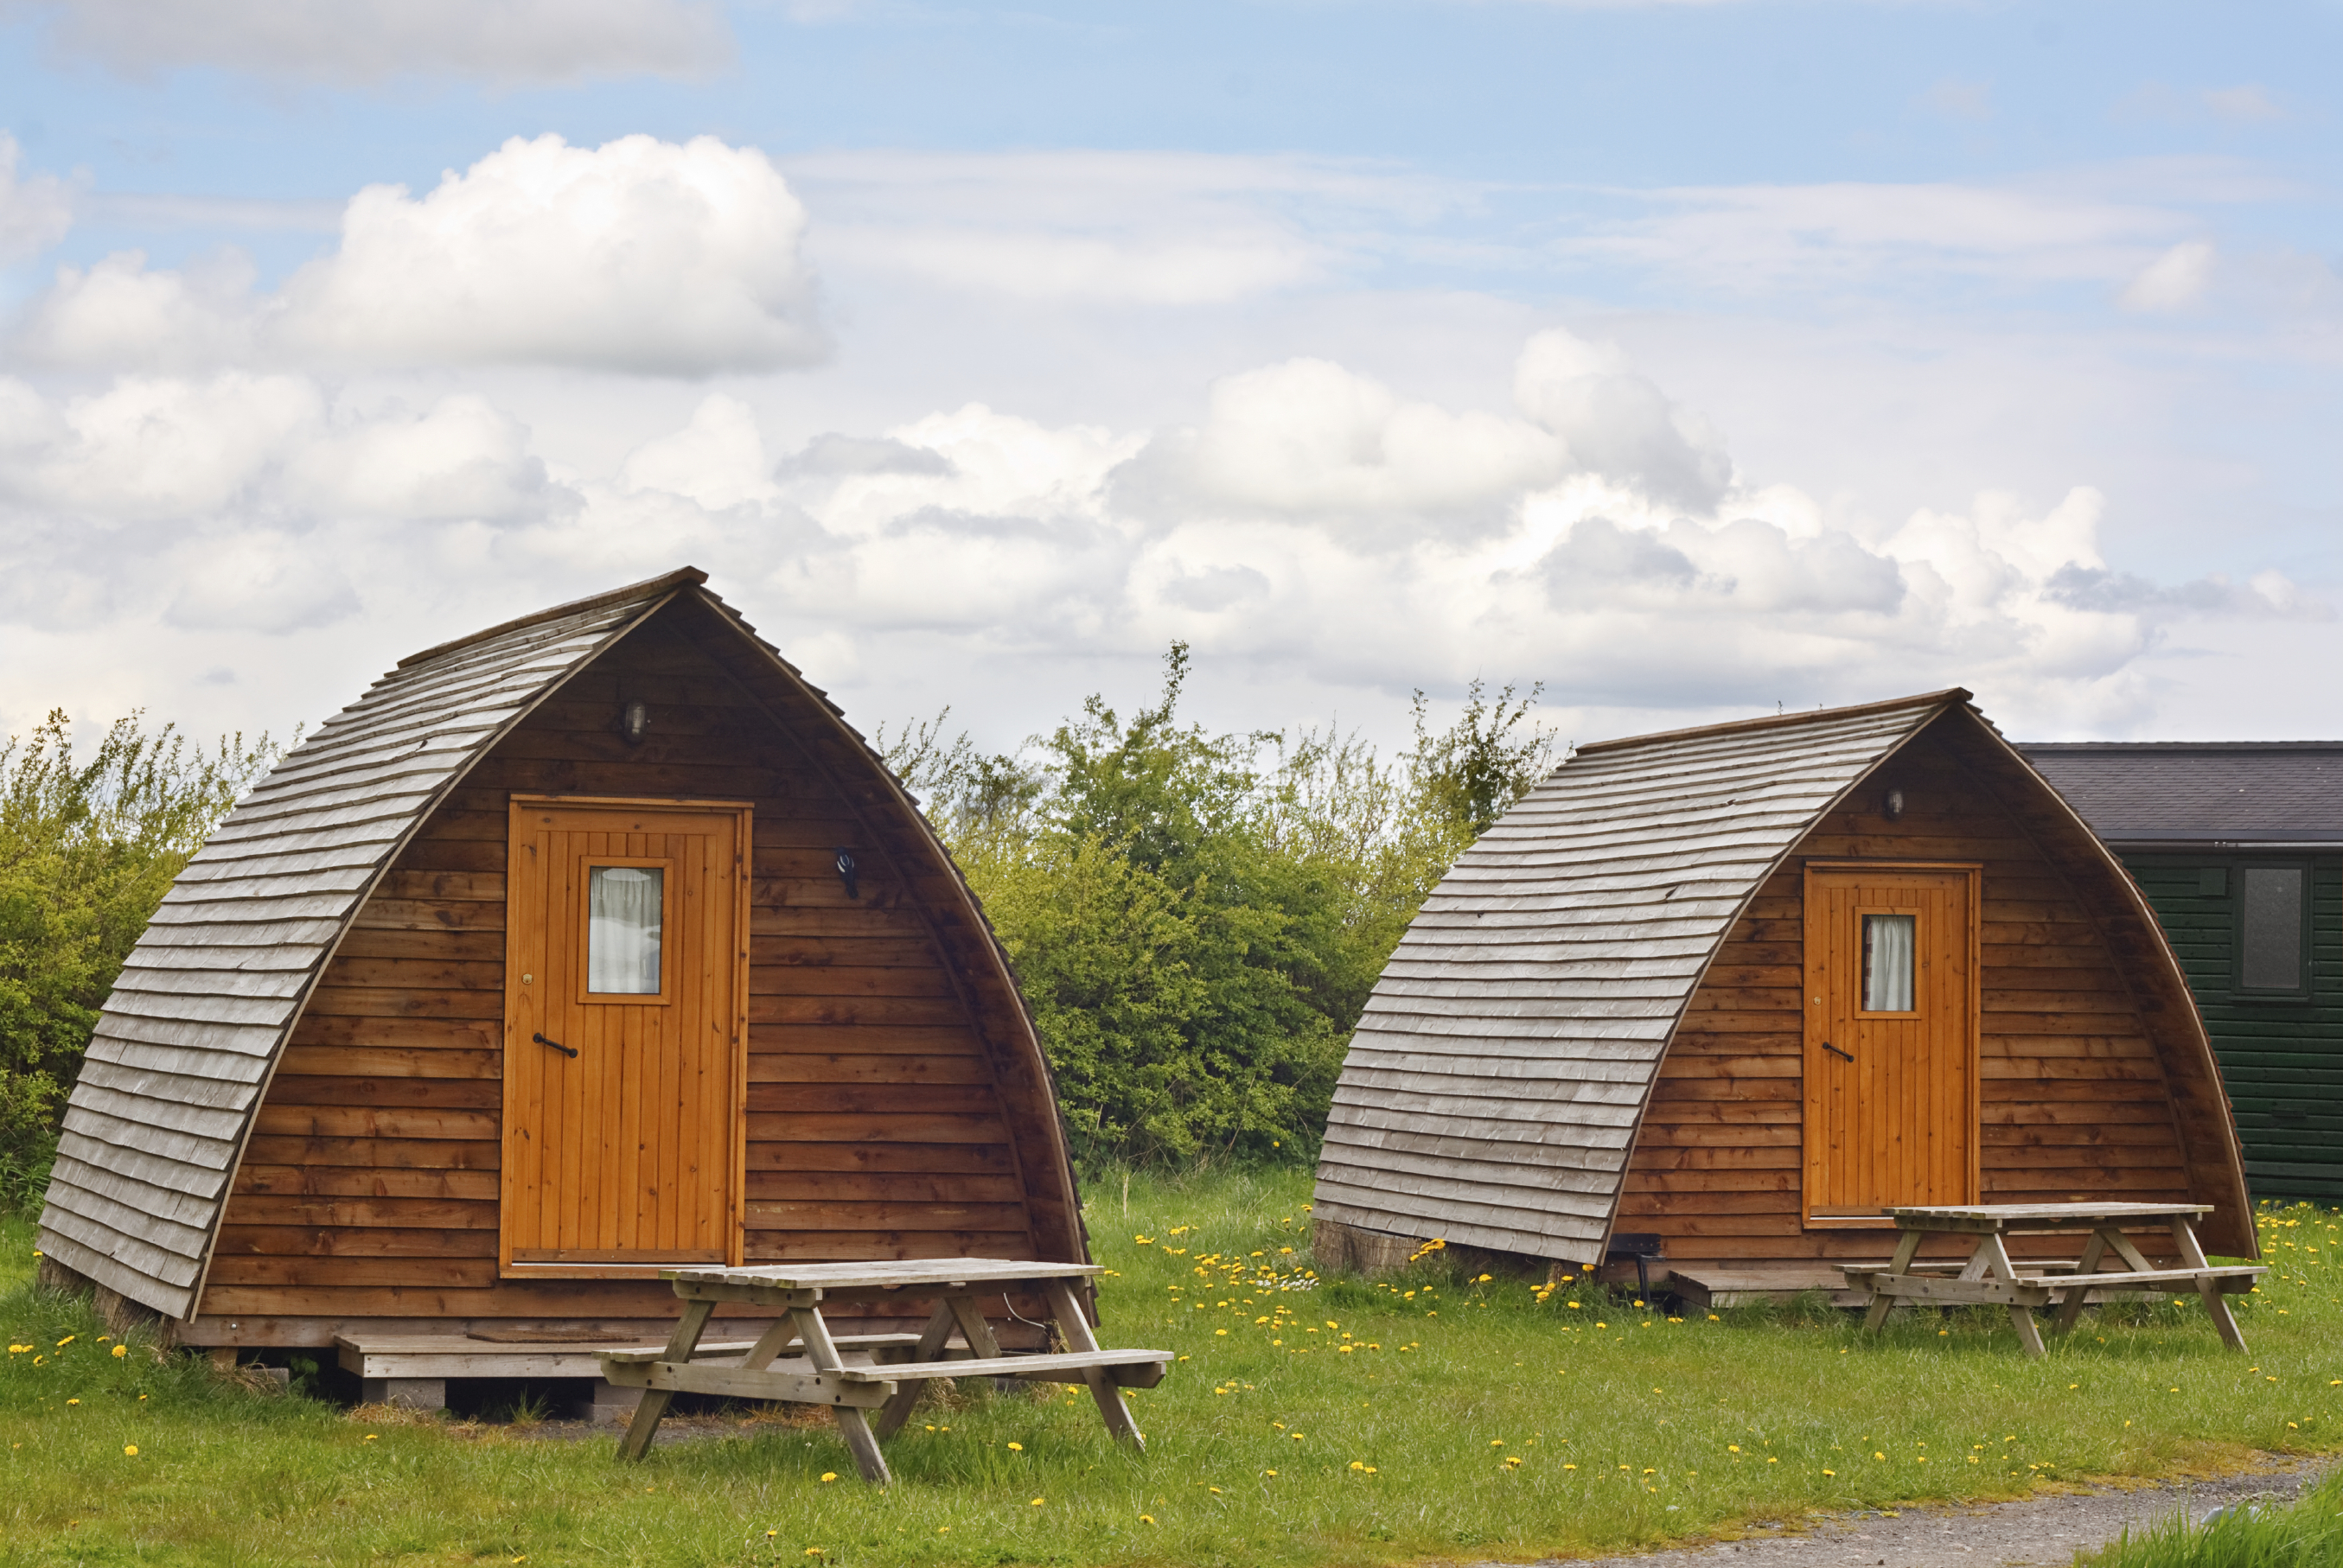 Modern camping tee pees at european camp site in The Yorkshire Dales National Park a contemporary trend called glamping because its more glamourous than the traditional method with all mod cons